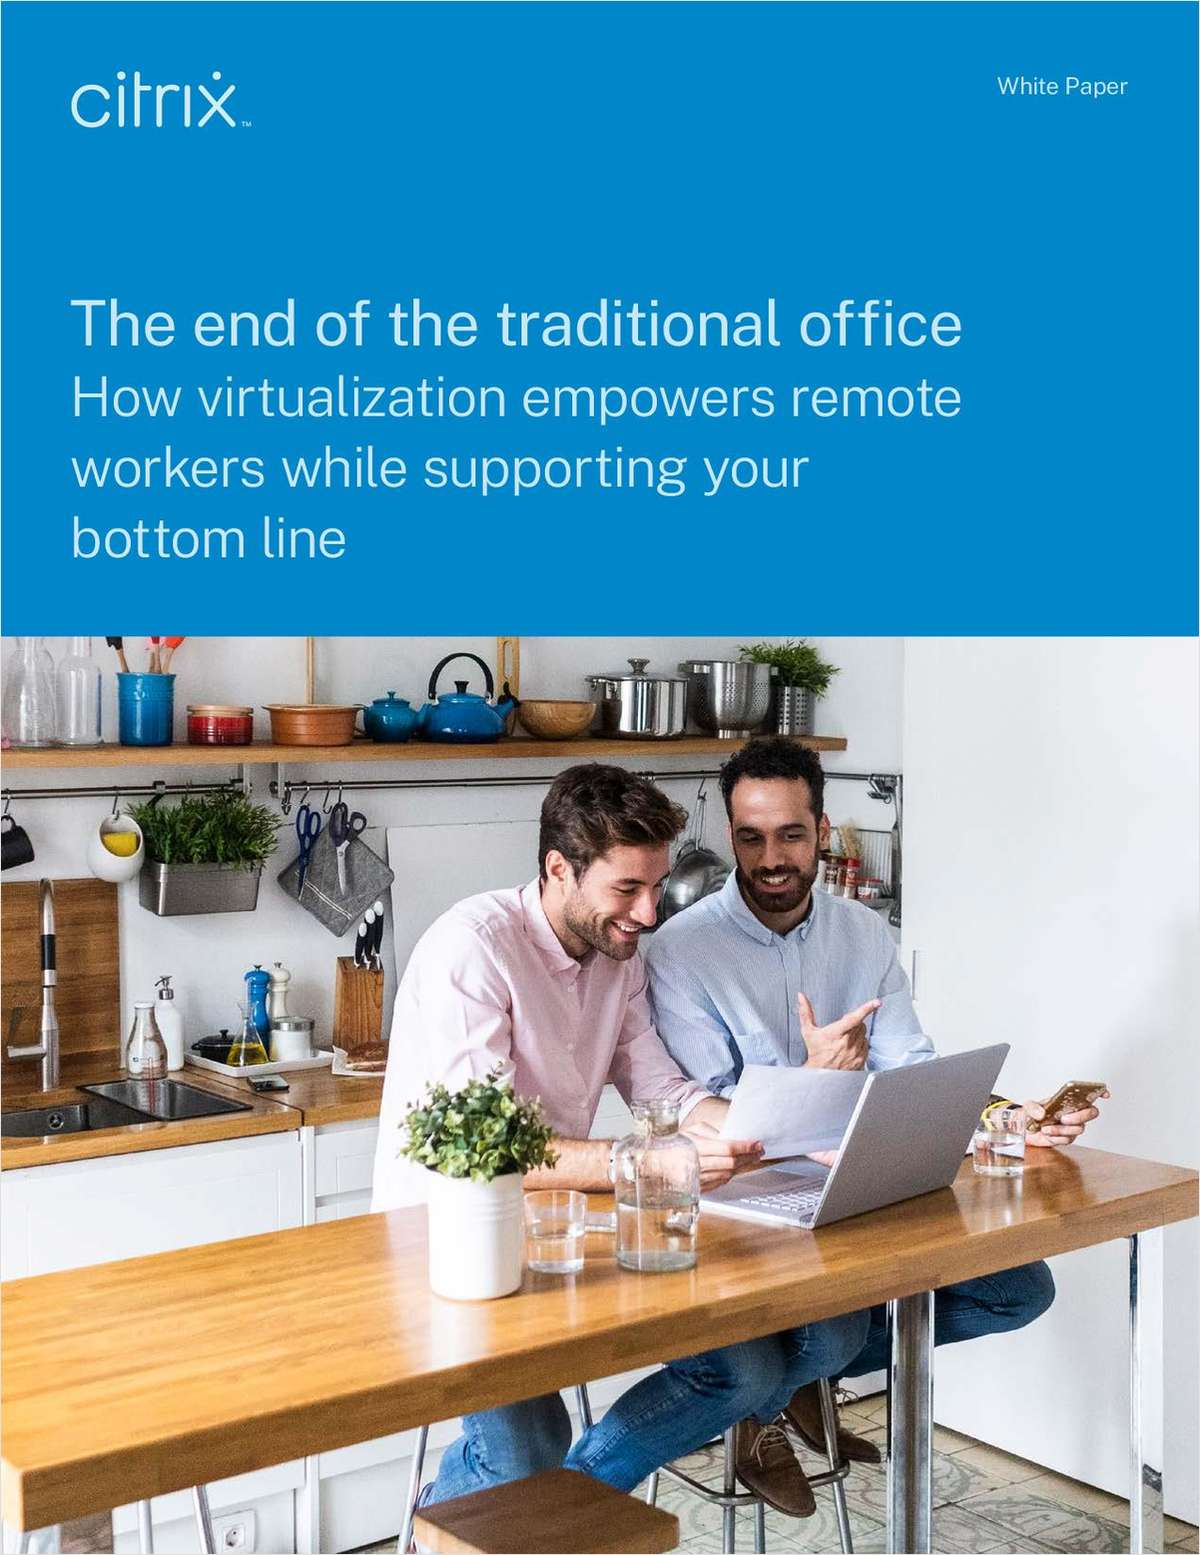 The End of the Traditional Office: How Virtualization Empowers Remote Workers While Supporting Your Bottom Line